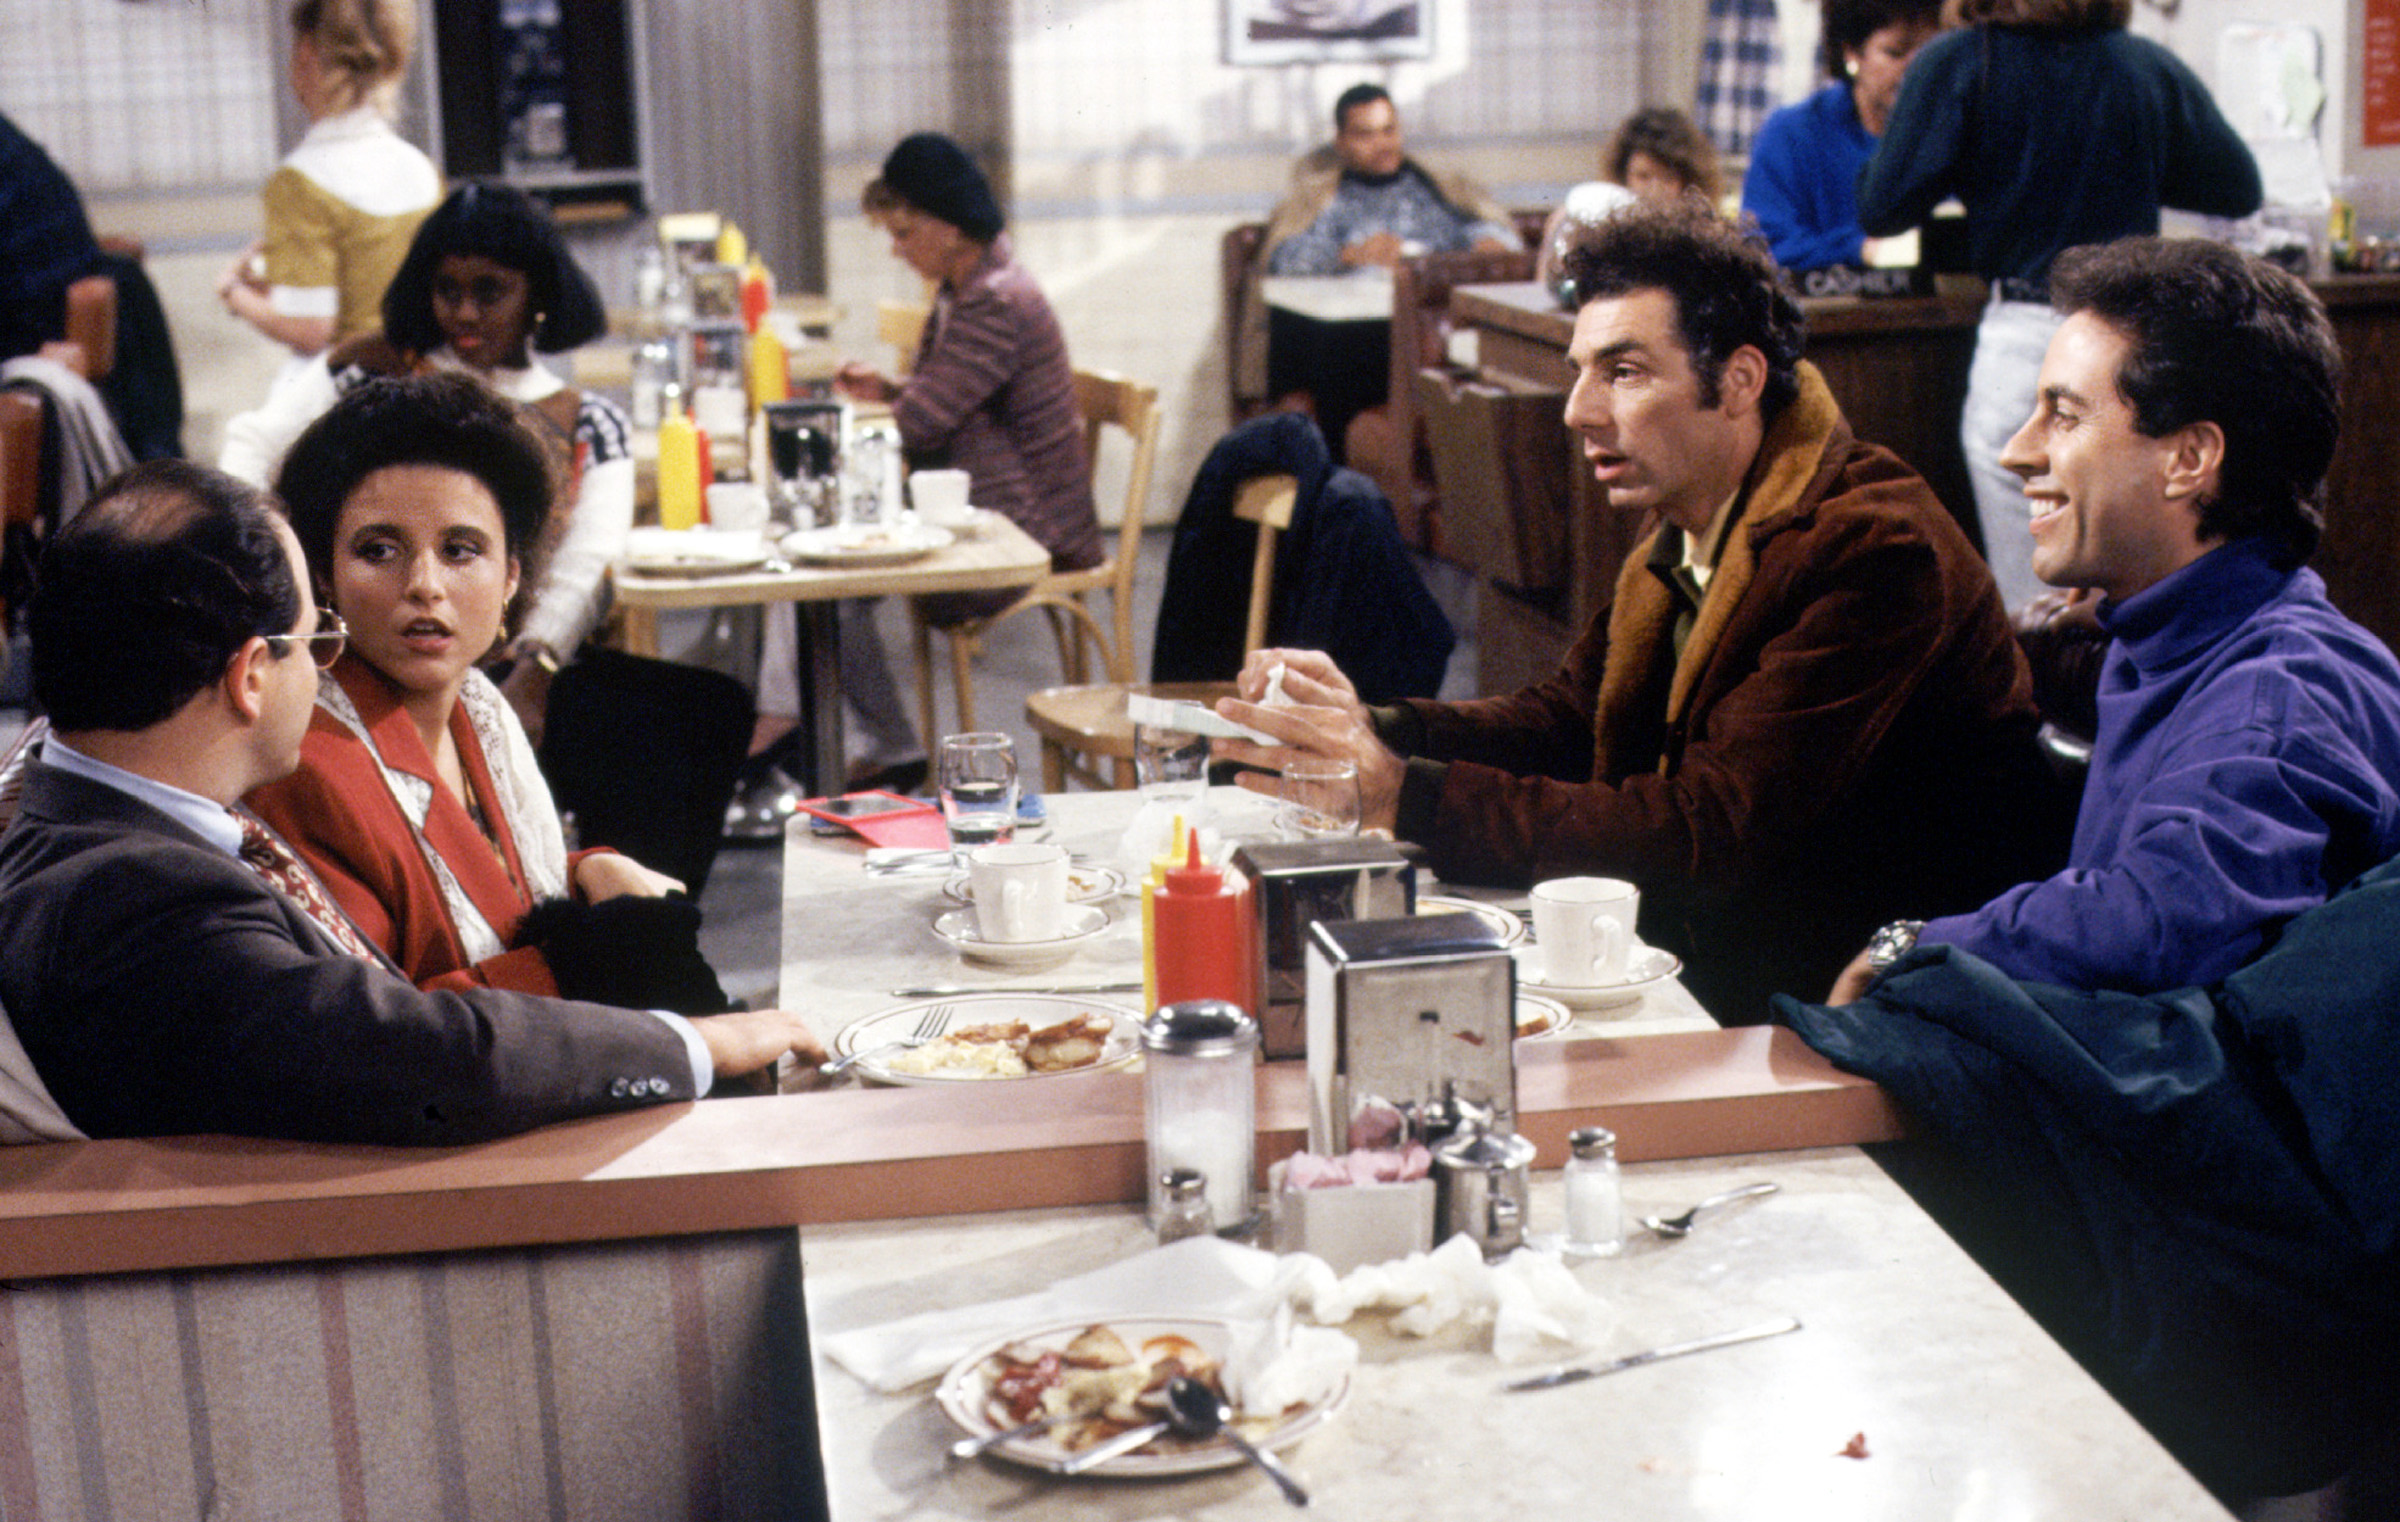 SEINFELD, Jason Alexander, Julia Louis-Dreyfus, Michael Richards, Jerry Seinfeld. Ep. 'The Subway' a